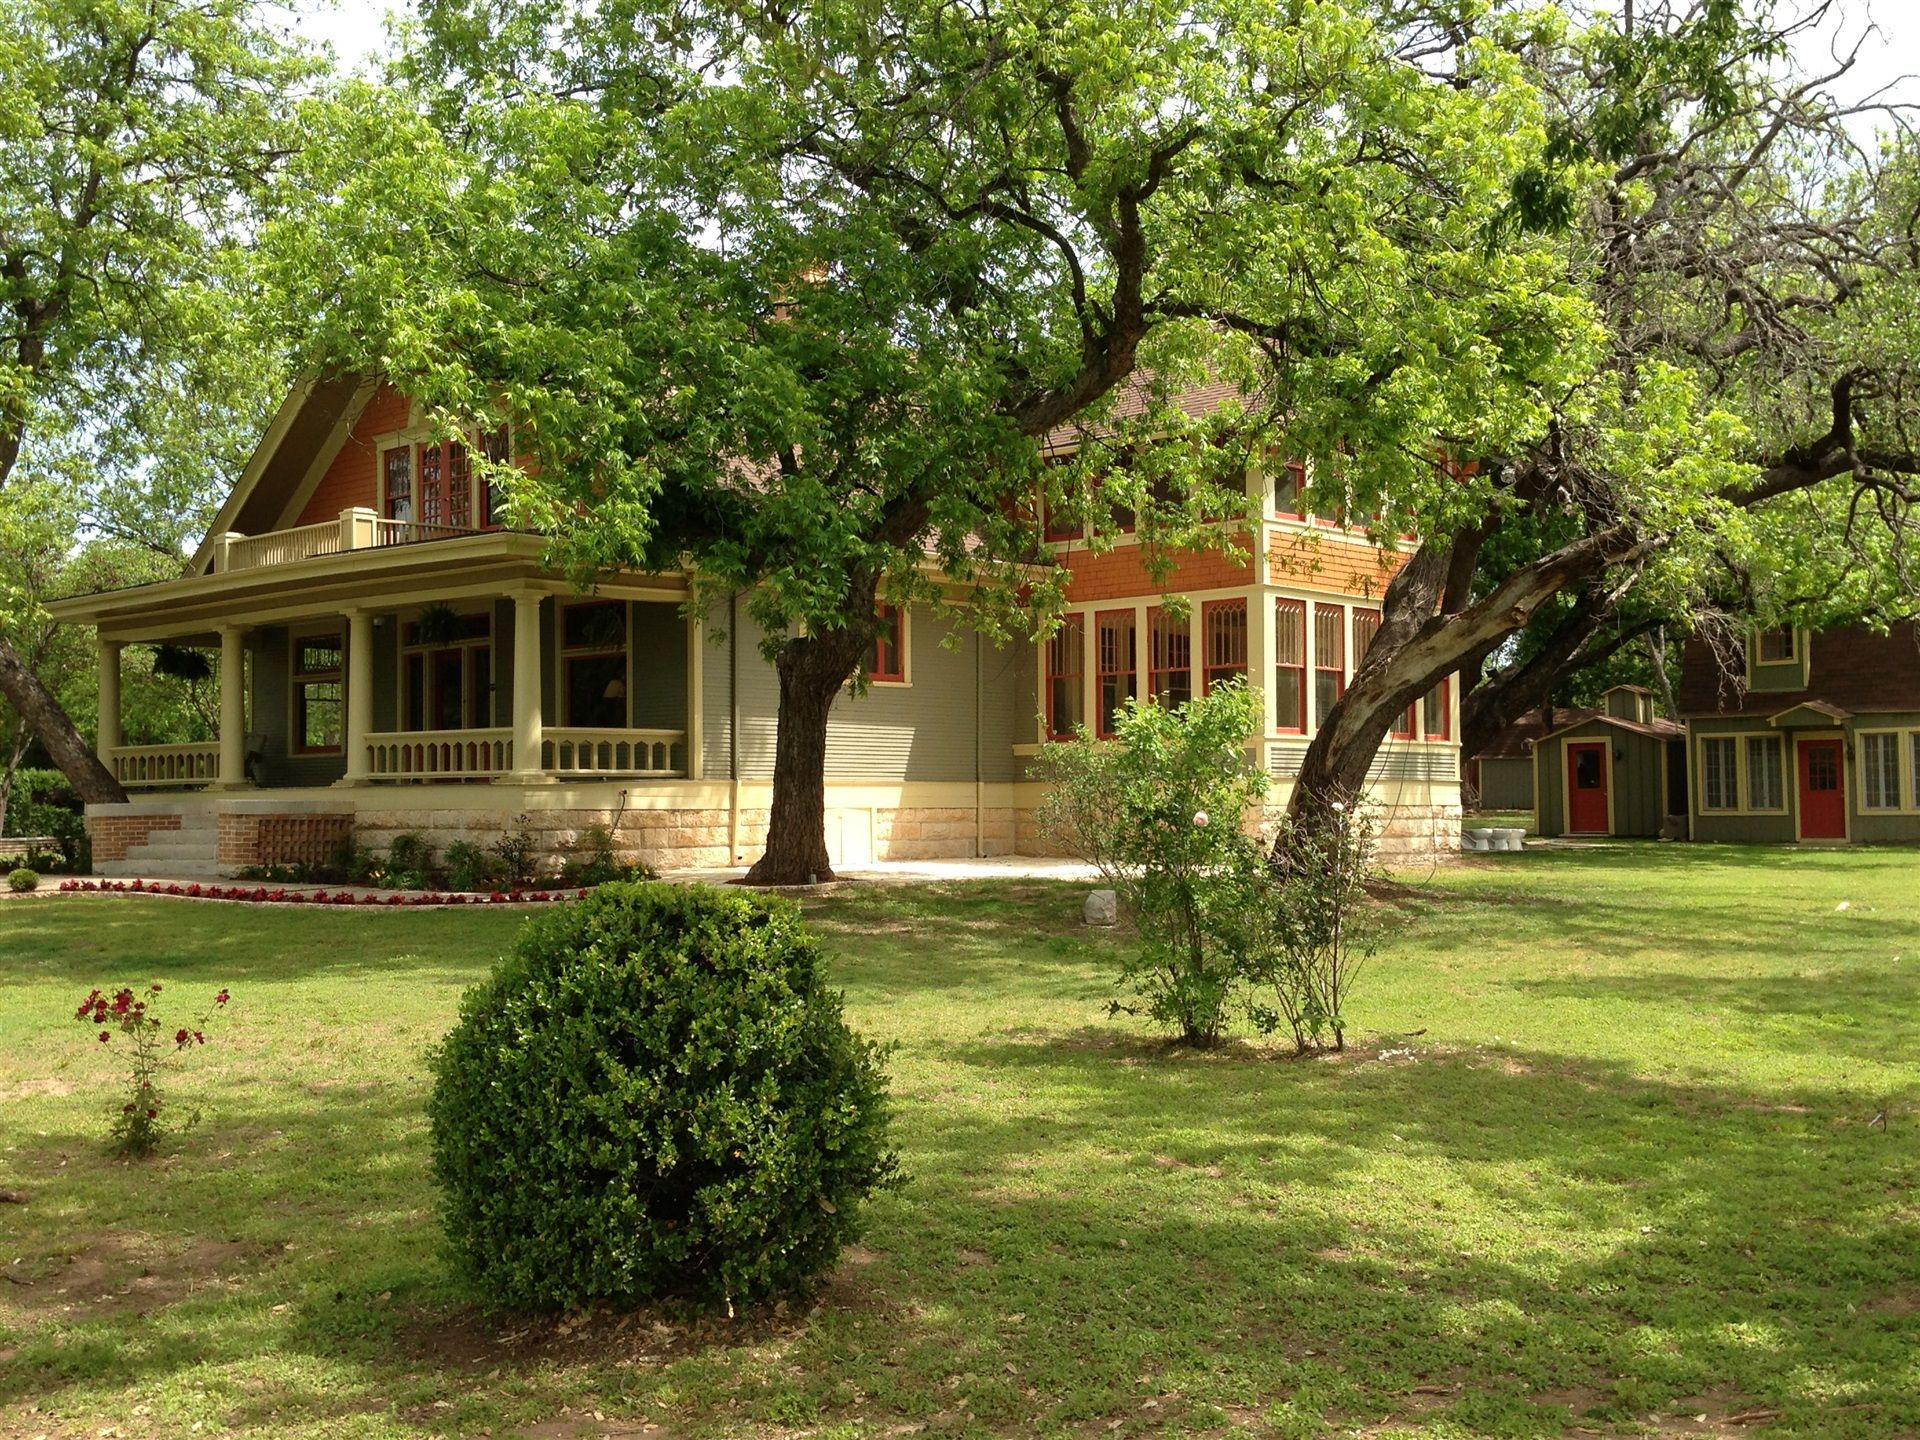 The Iron Horse Inn in Granbury is a beautiful and historic